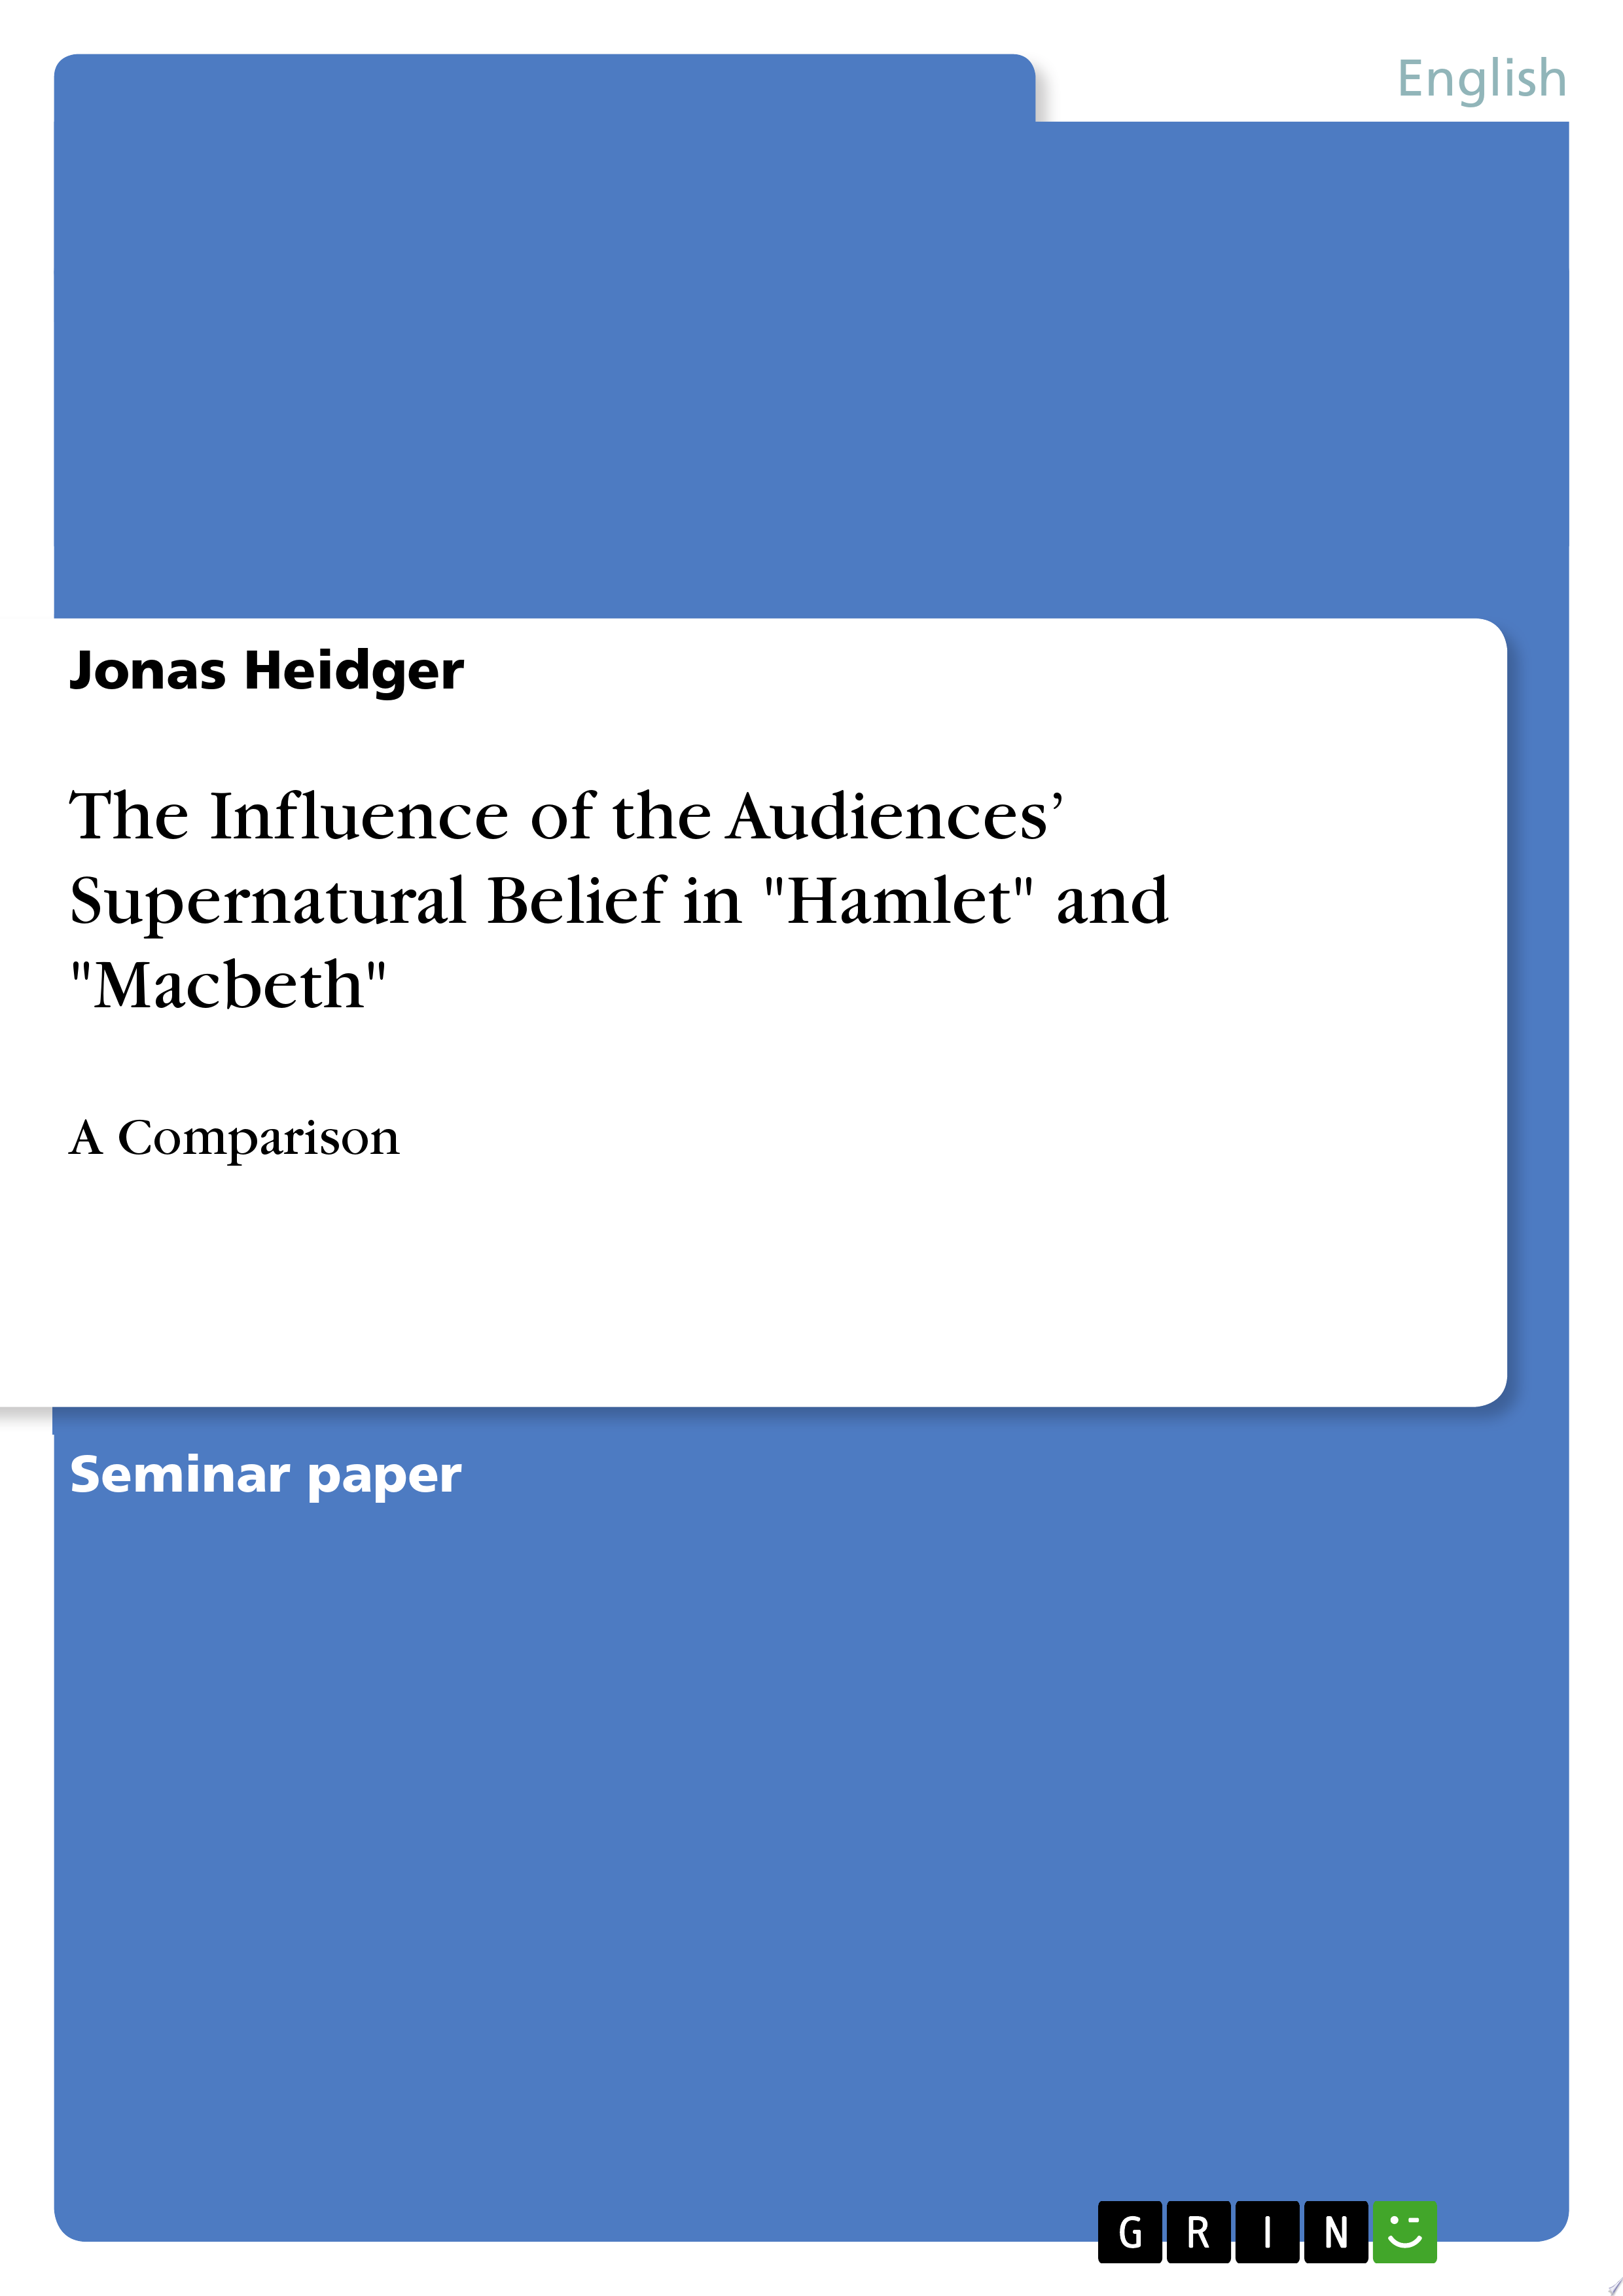 The Influence of the Audiences    Supernatural Belief in  Hamlet  and  Macbeth